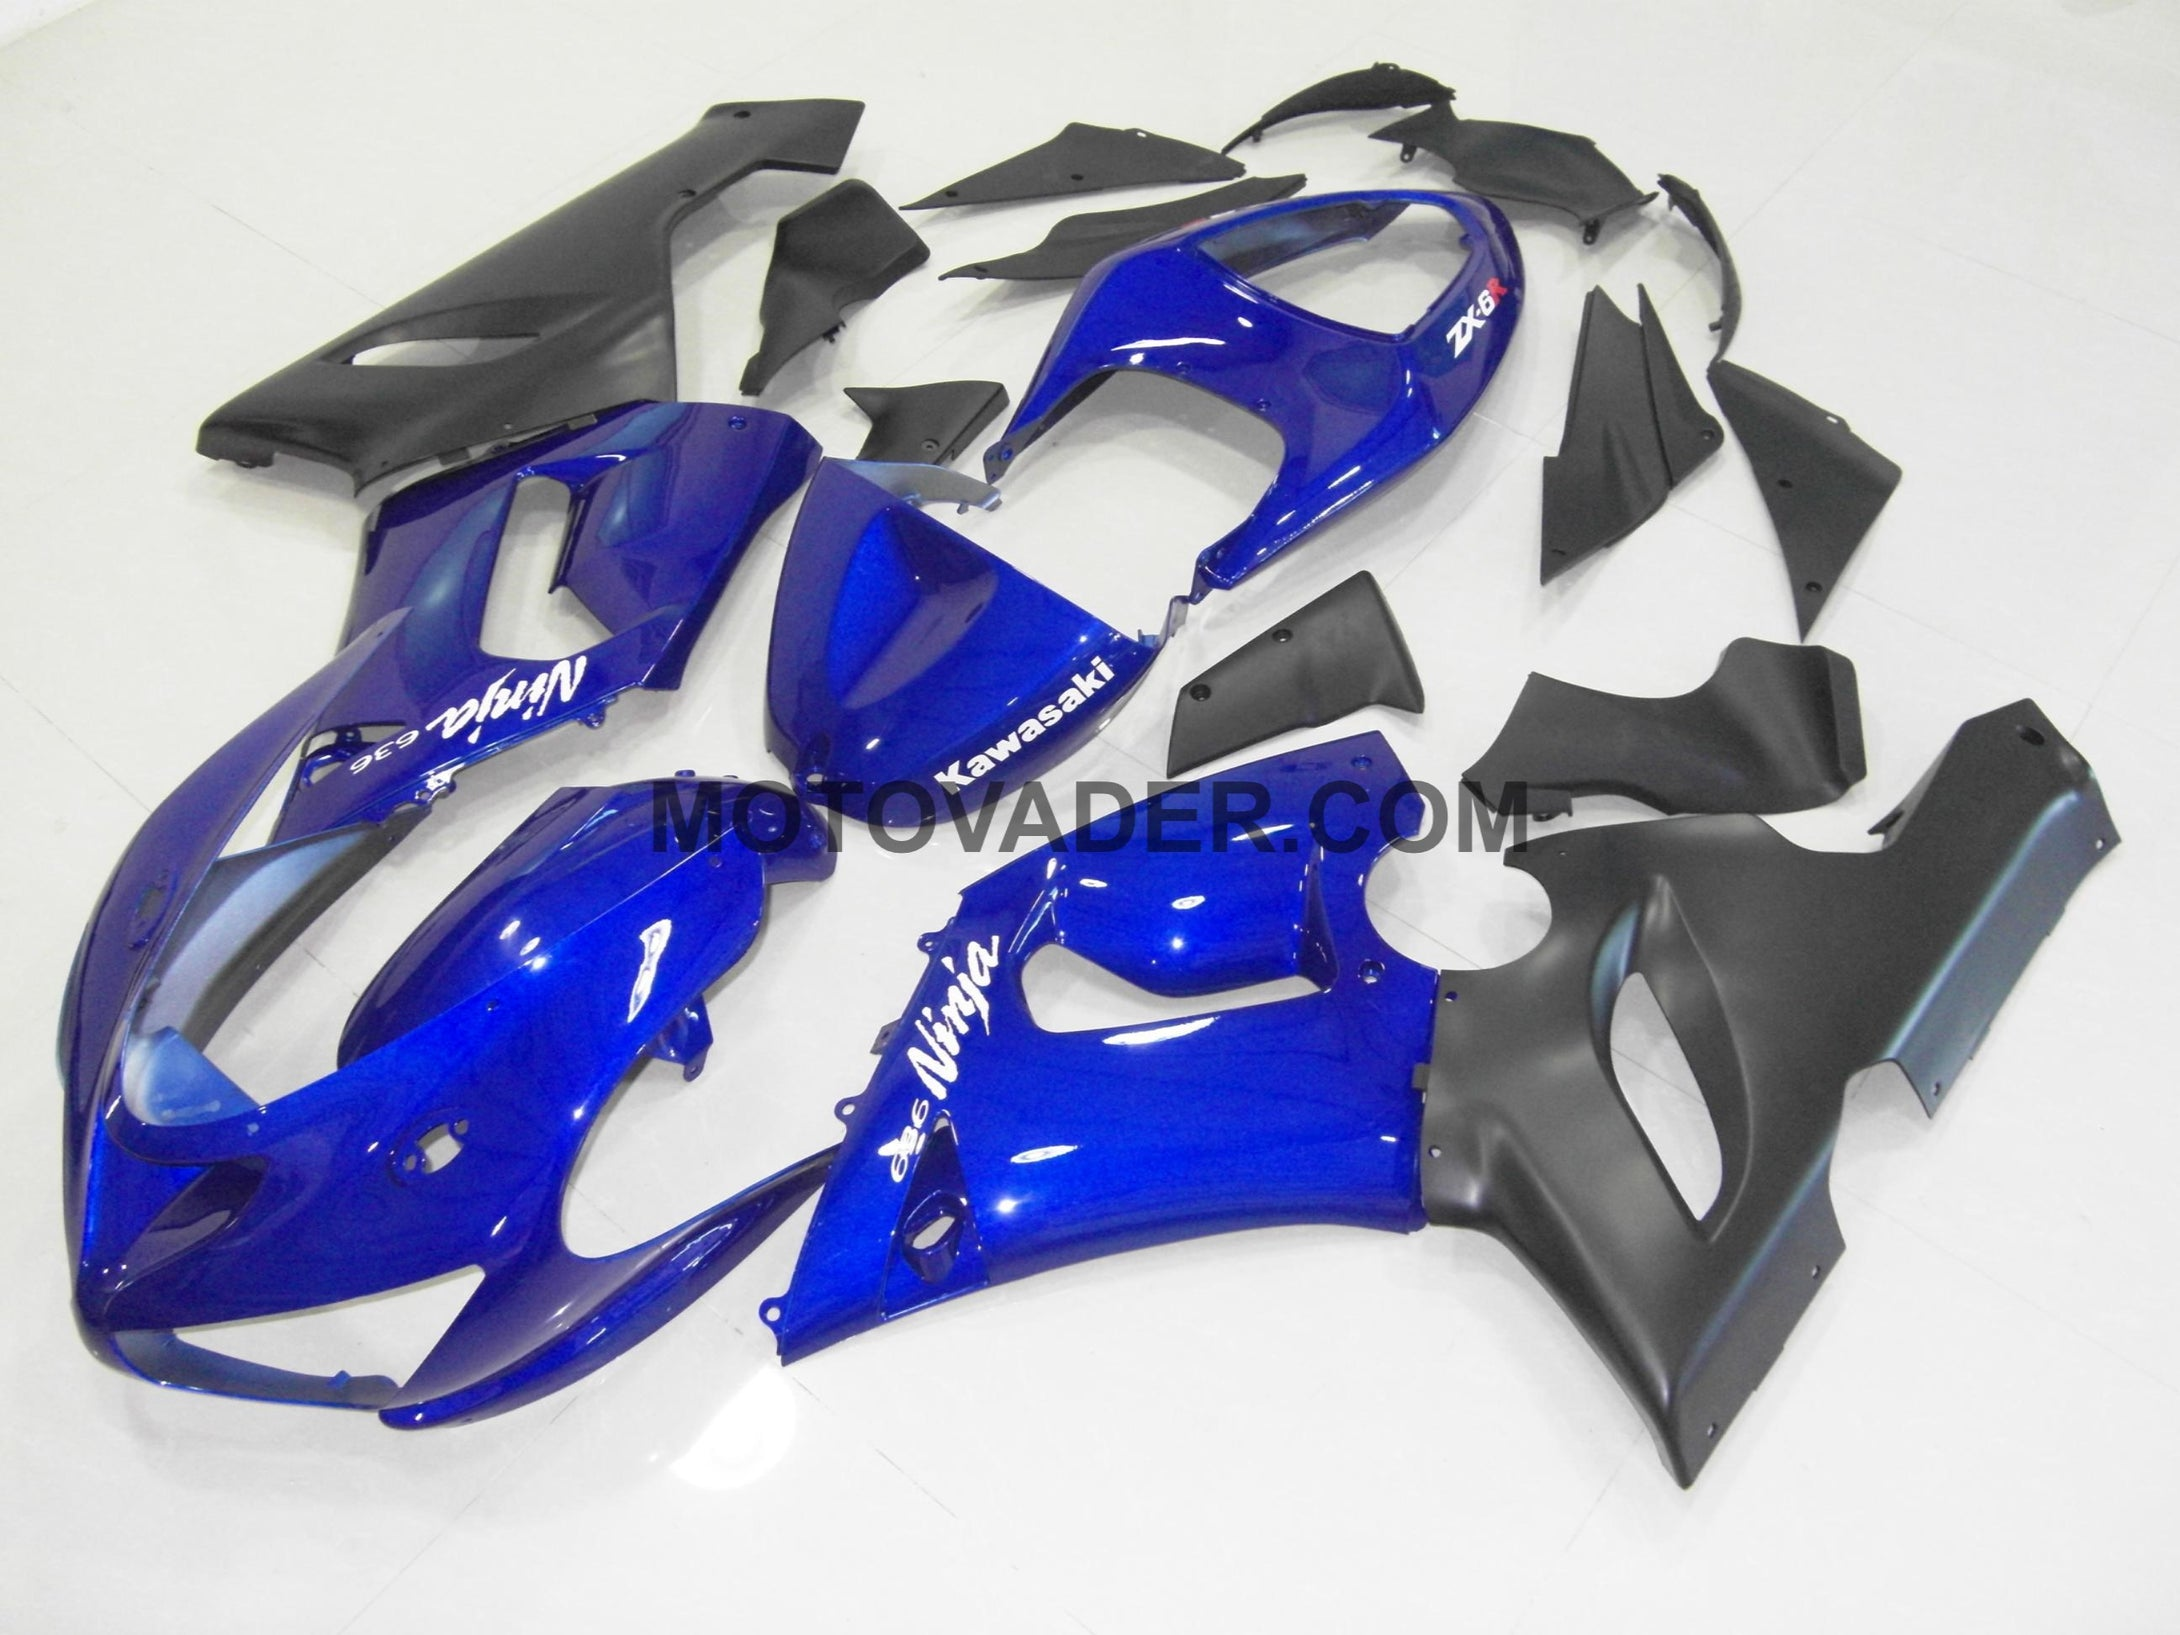 Kawasaki ZX-6R 2005-2006 Blue & Black 4 Fairing